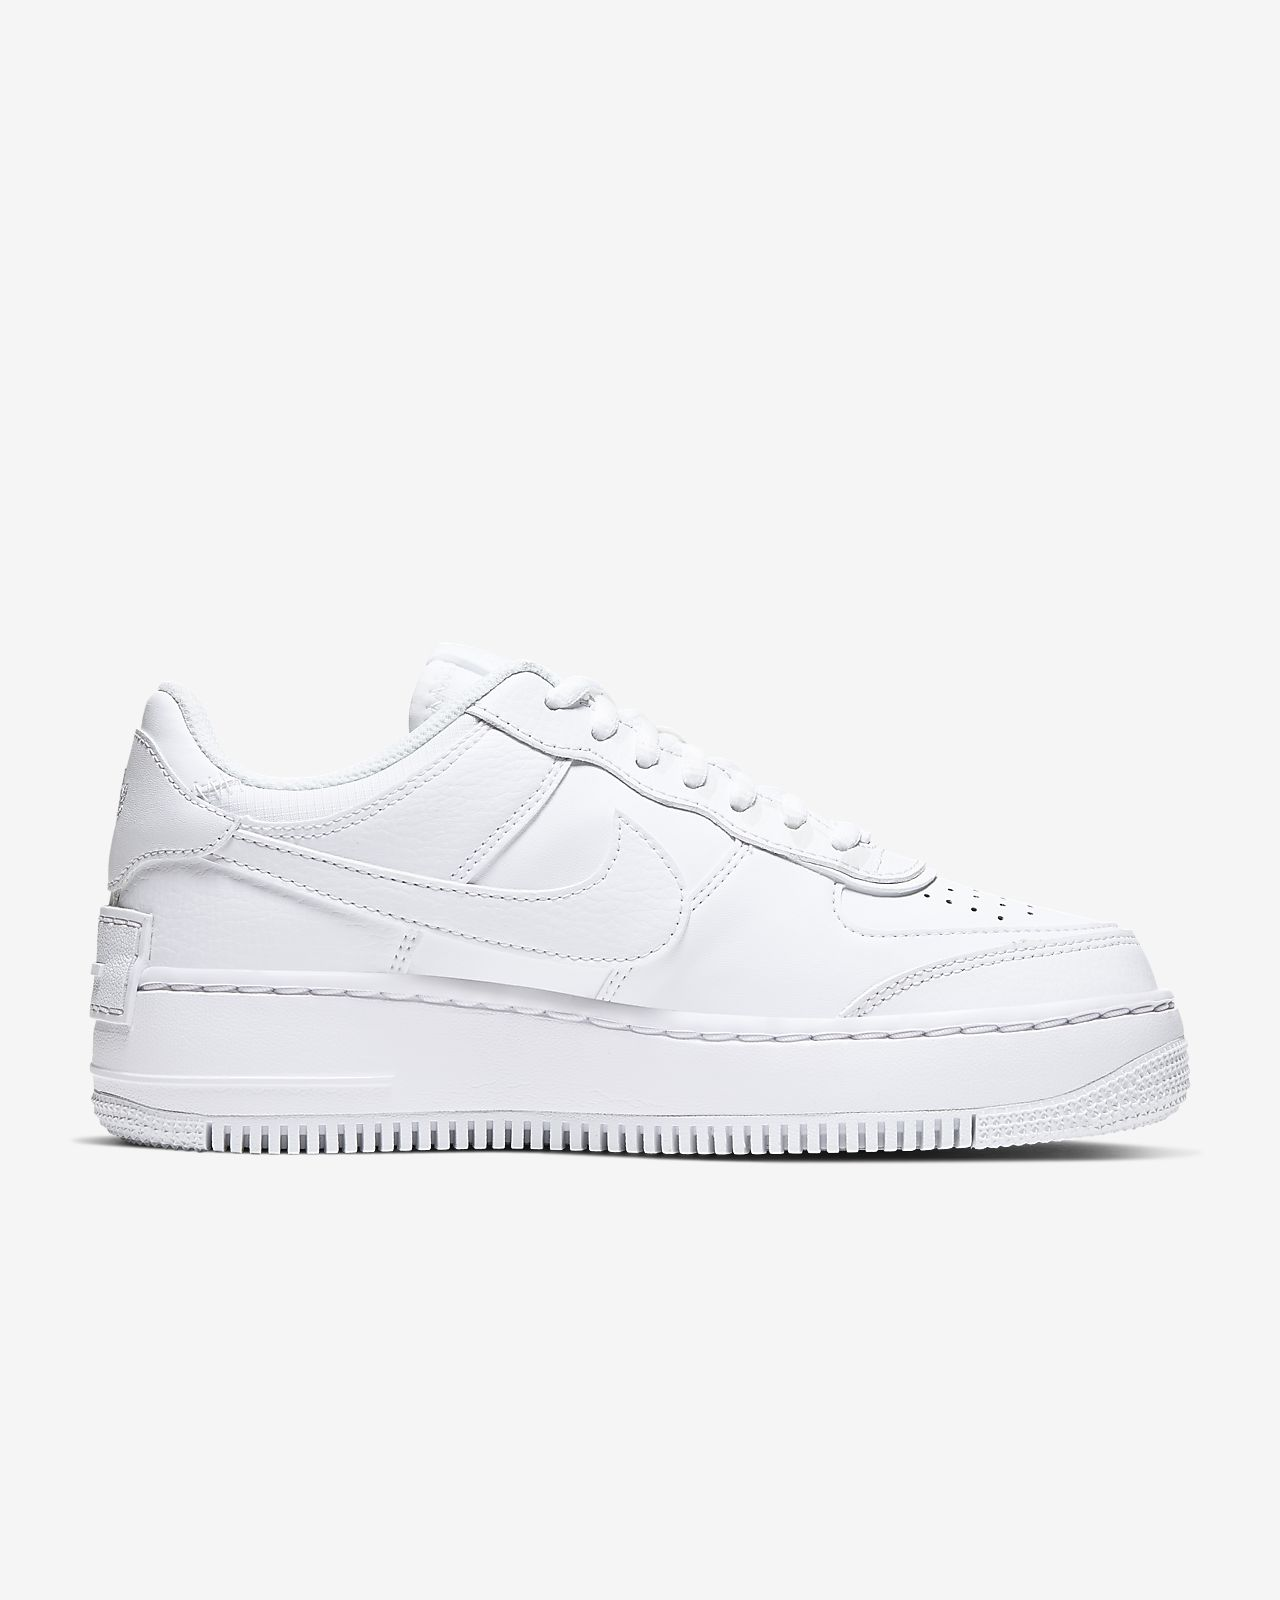 offwhite x nike air force 1 '07 air force classic low to help casual sports shoe